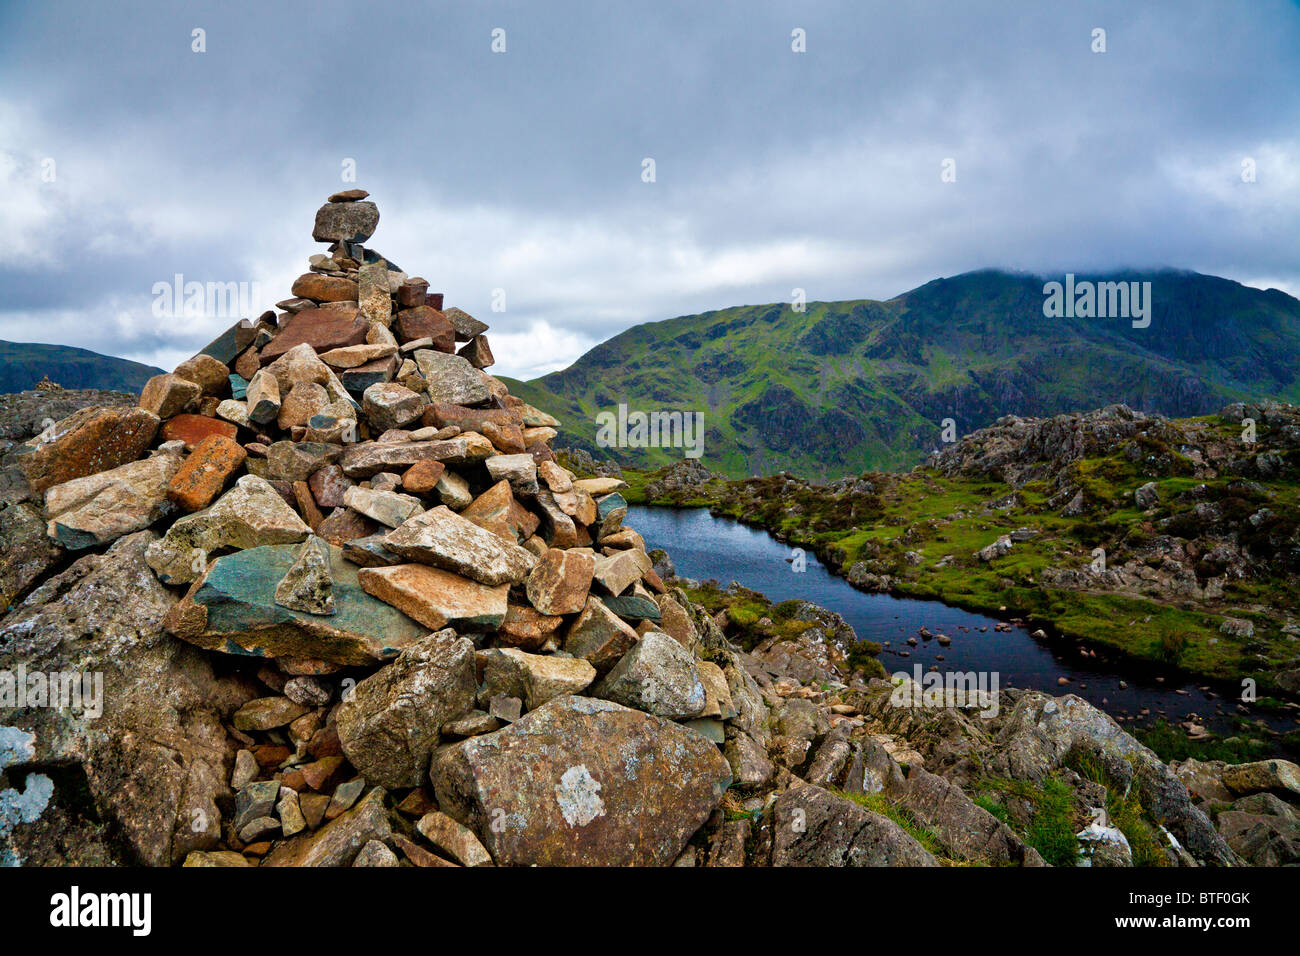 Le cairn du sommet en haut de meules au Lake District, Cumbria, England, UK Photo Stock